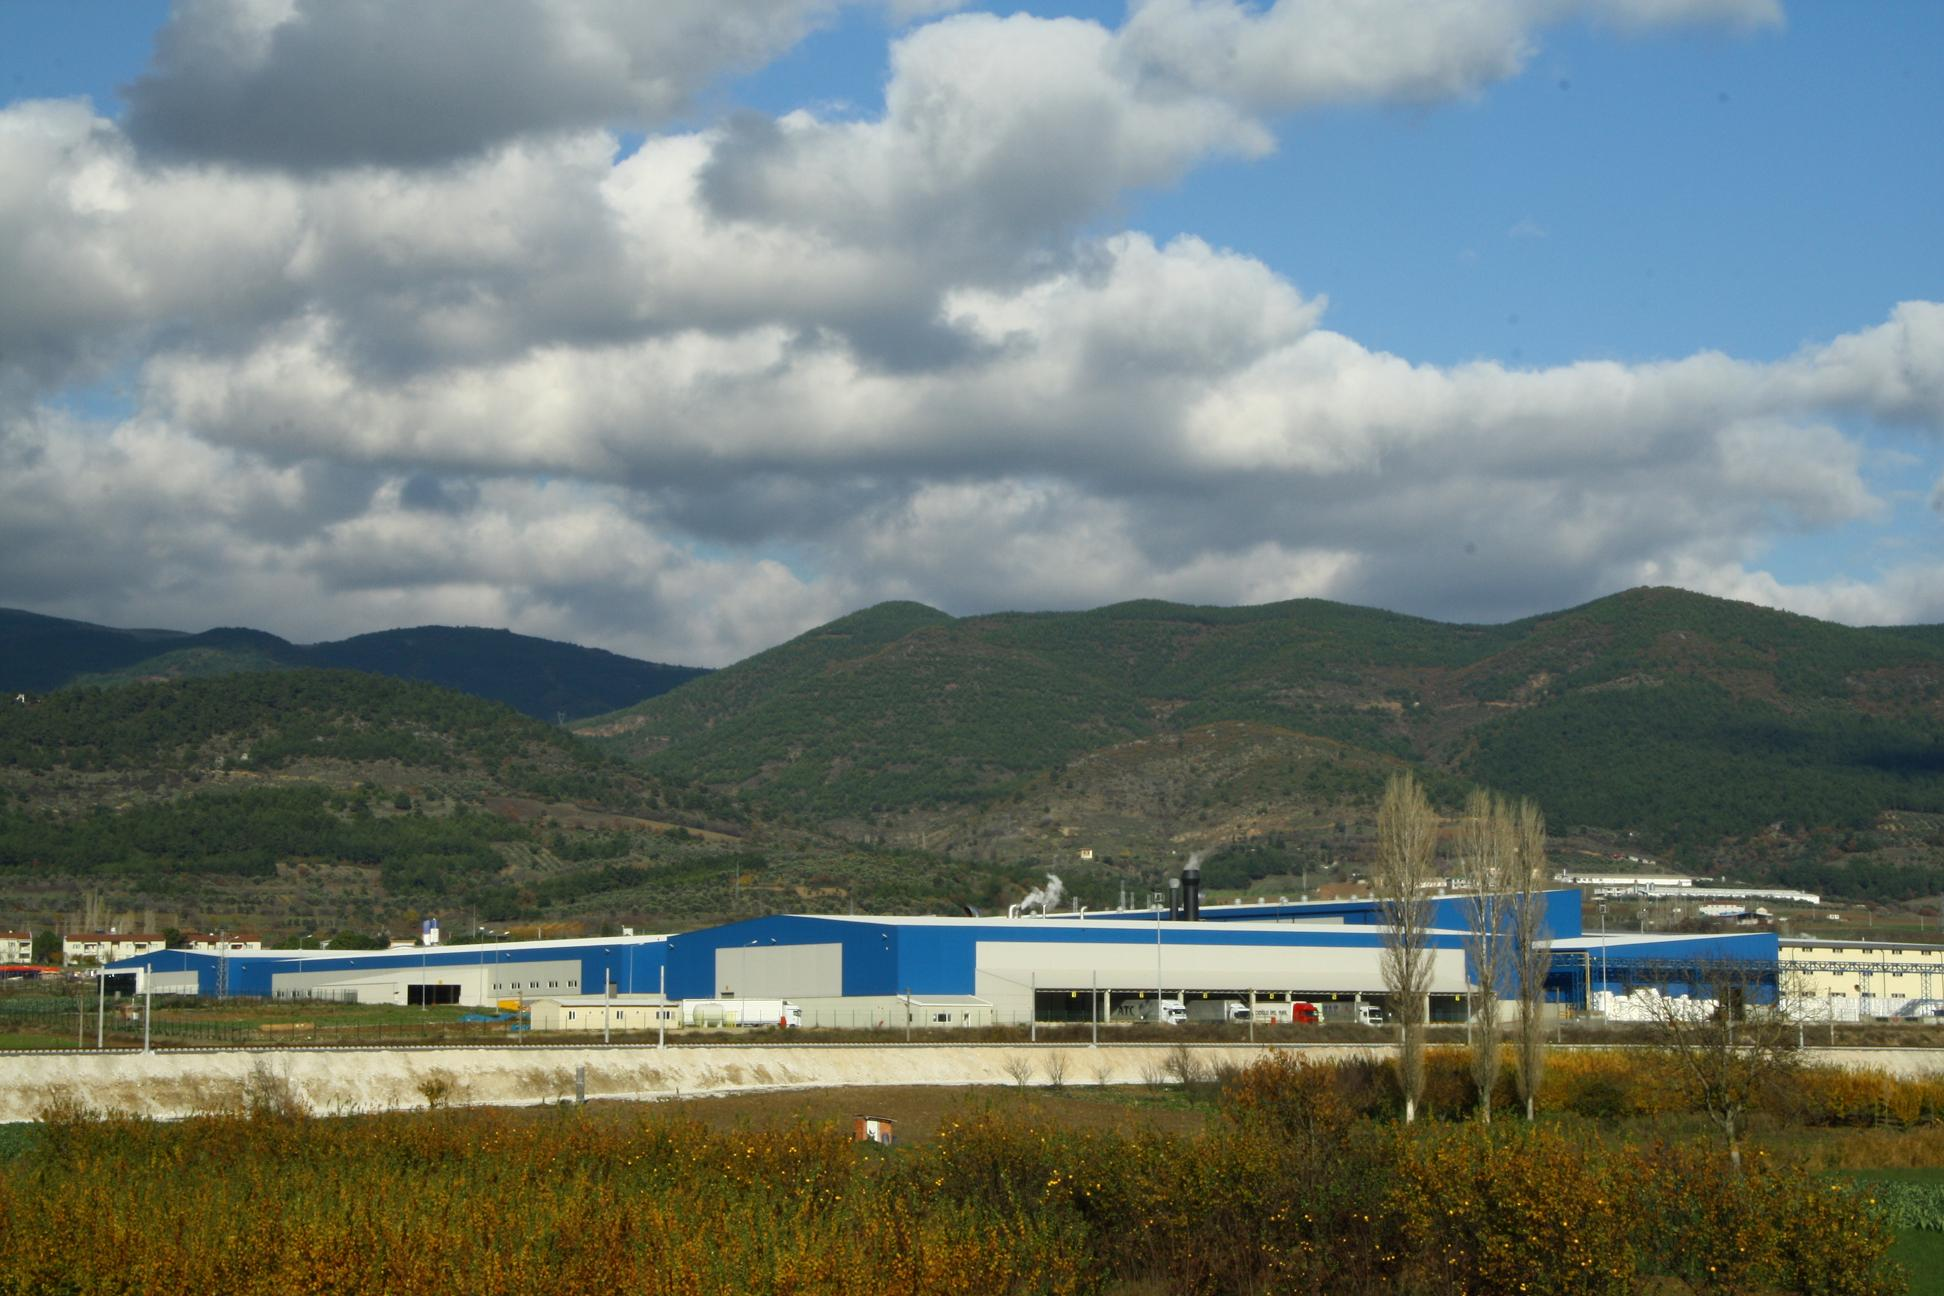 Turkey: Tul Kagit is expecting to branch out into the AfH market within the next 18 months